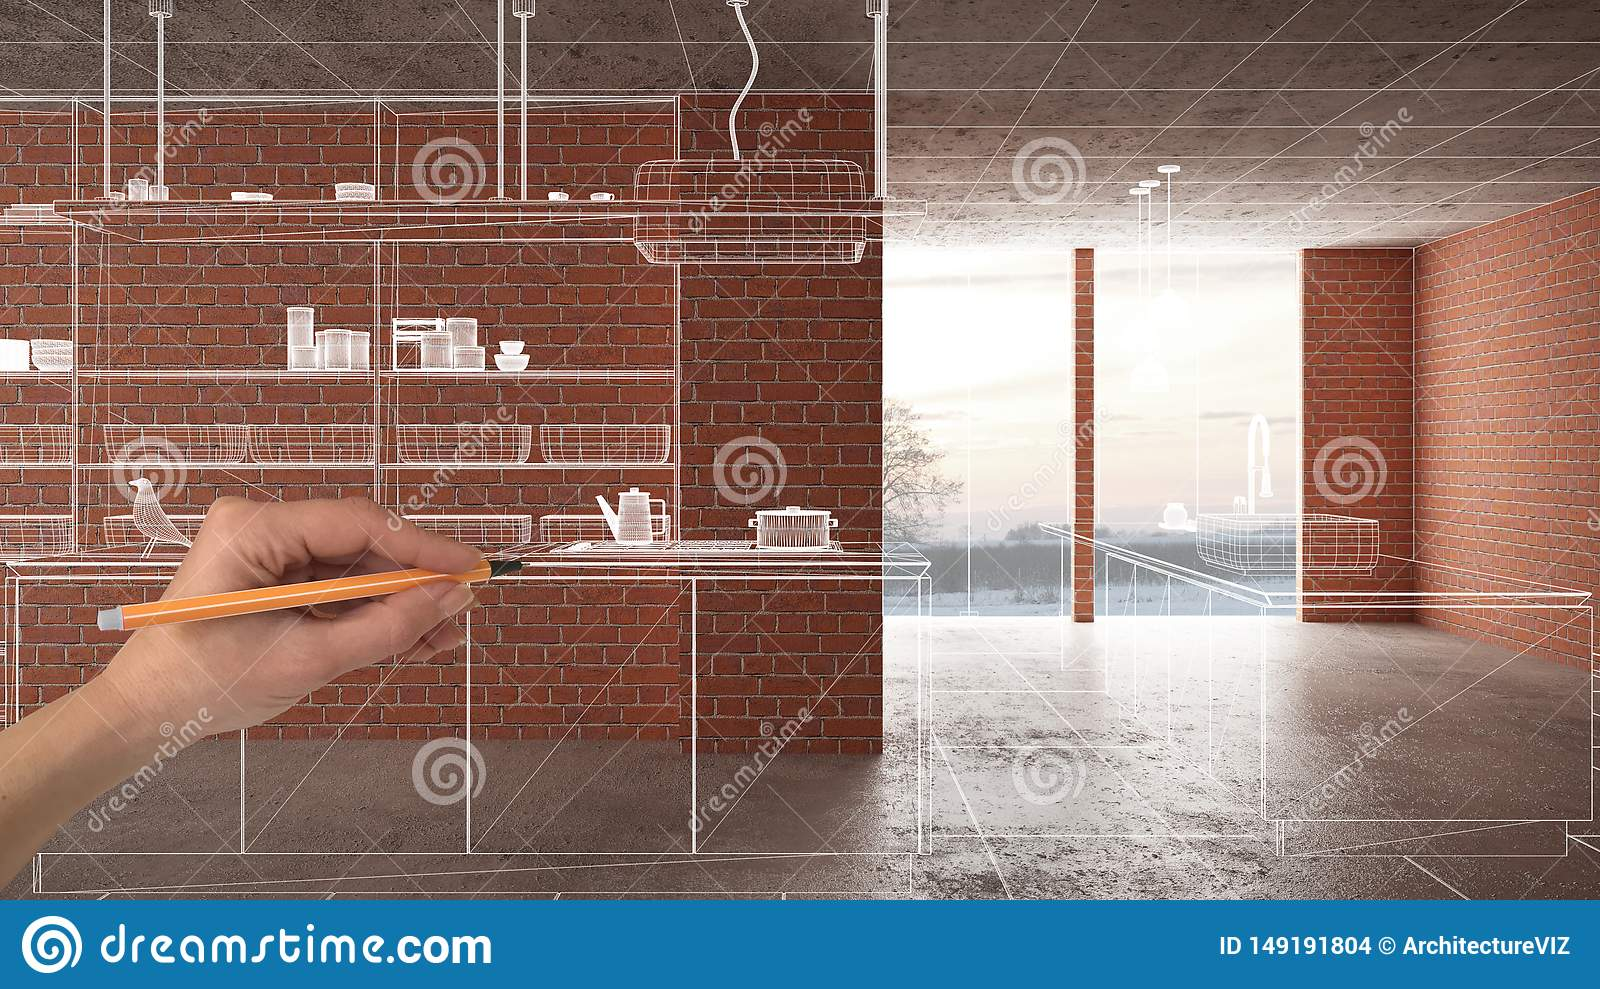 Home renovation, house development concept background, interior design under construction with hand drawing custom architecture,